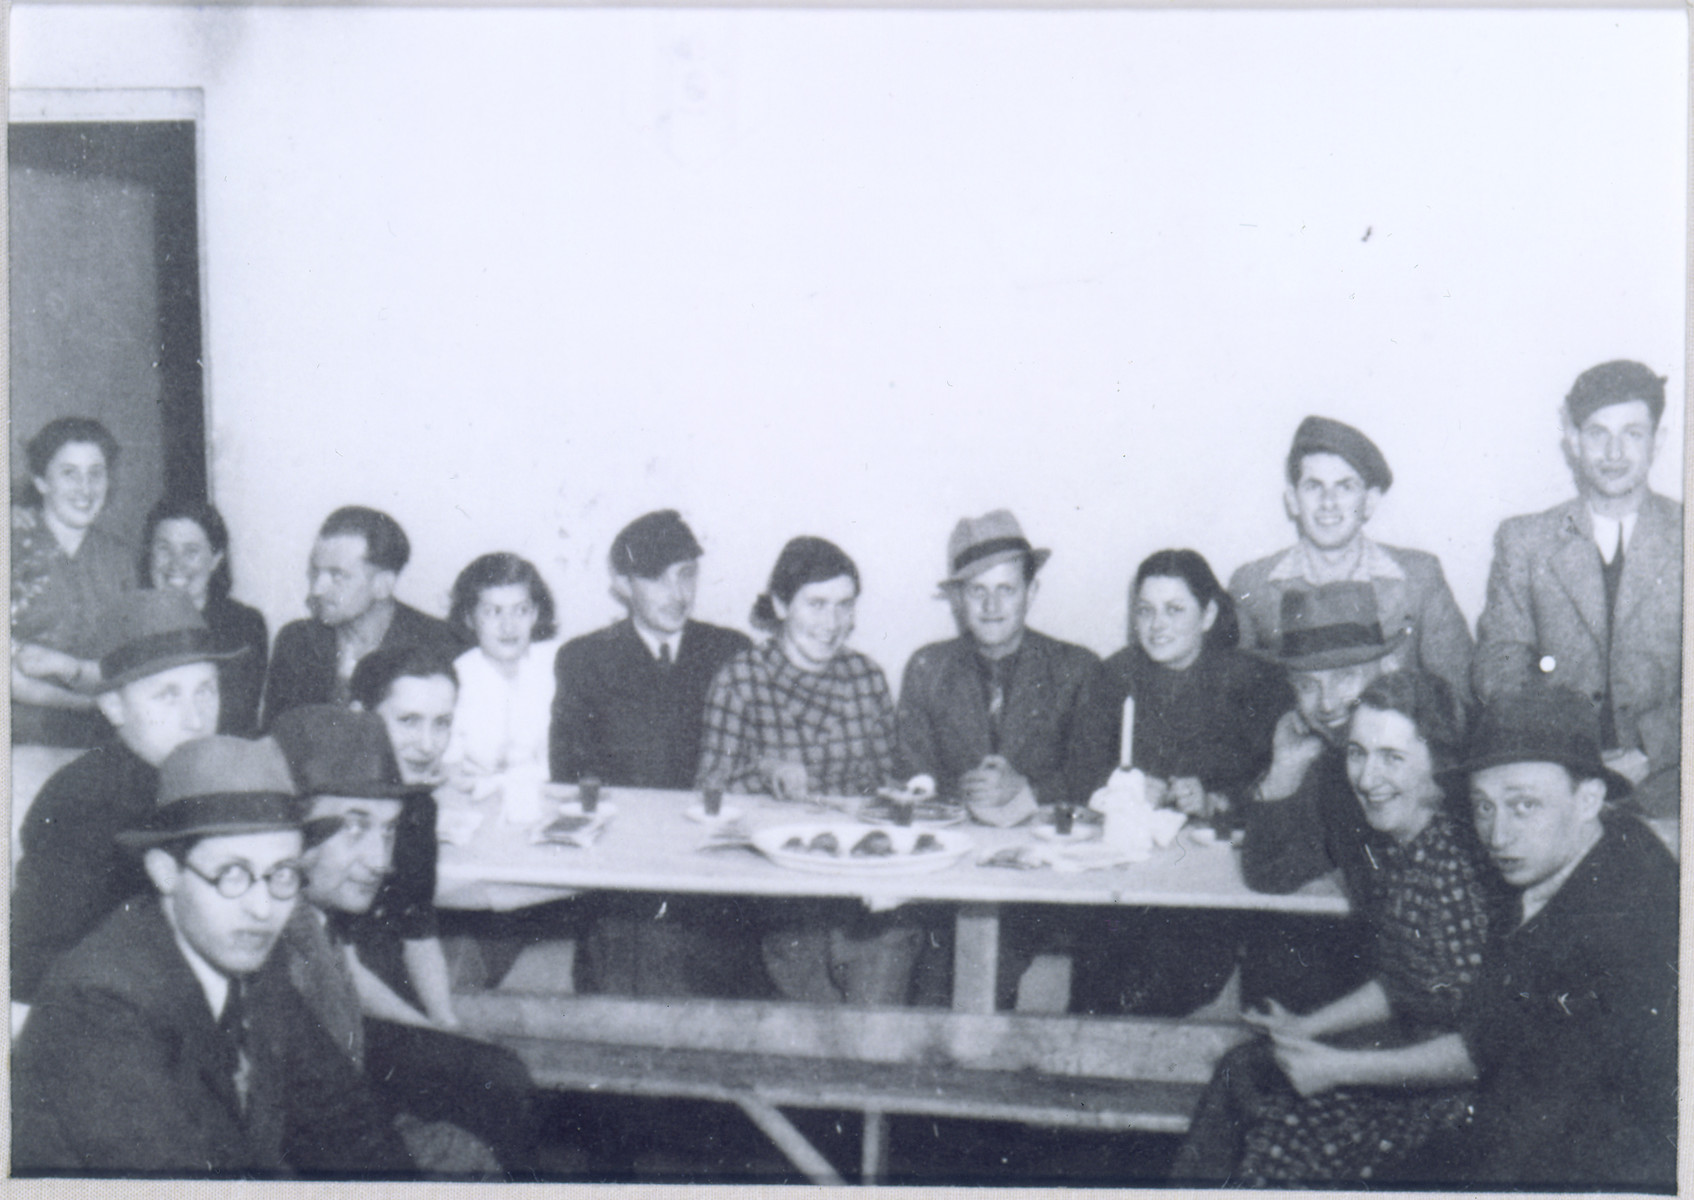 "Gathering of Polish Jewish refugees at the ""Internat"" Betar youth hostel in Vilna.    Among those pictured are Menahem Begin (at the front left); Fejga Szepsenwol (top left); and Chaya Szepsenwol (third from the right, behind the candle).  Pictured on the right are probably Batya and Israel Scheib (Eldad), future leader of the Lechi.  The Internat was one of a series of communal residences established by the American Jewish Joint Distribution Committee to help deal with the housing crisis that resulted when thousands of Polish Jewish refugees flooded into Vilna in the months following the outbreak of WWII.  The JDC grouped the refugees (who were largely unaccompanied youth) in residences according to youth movement affiliation."